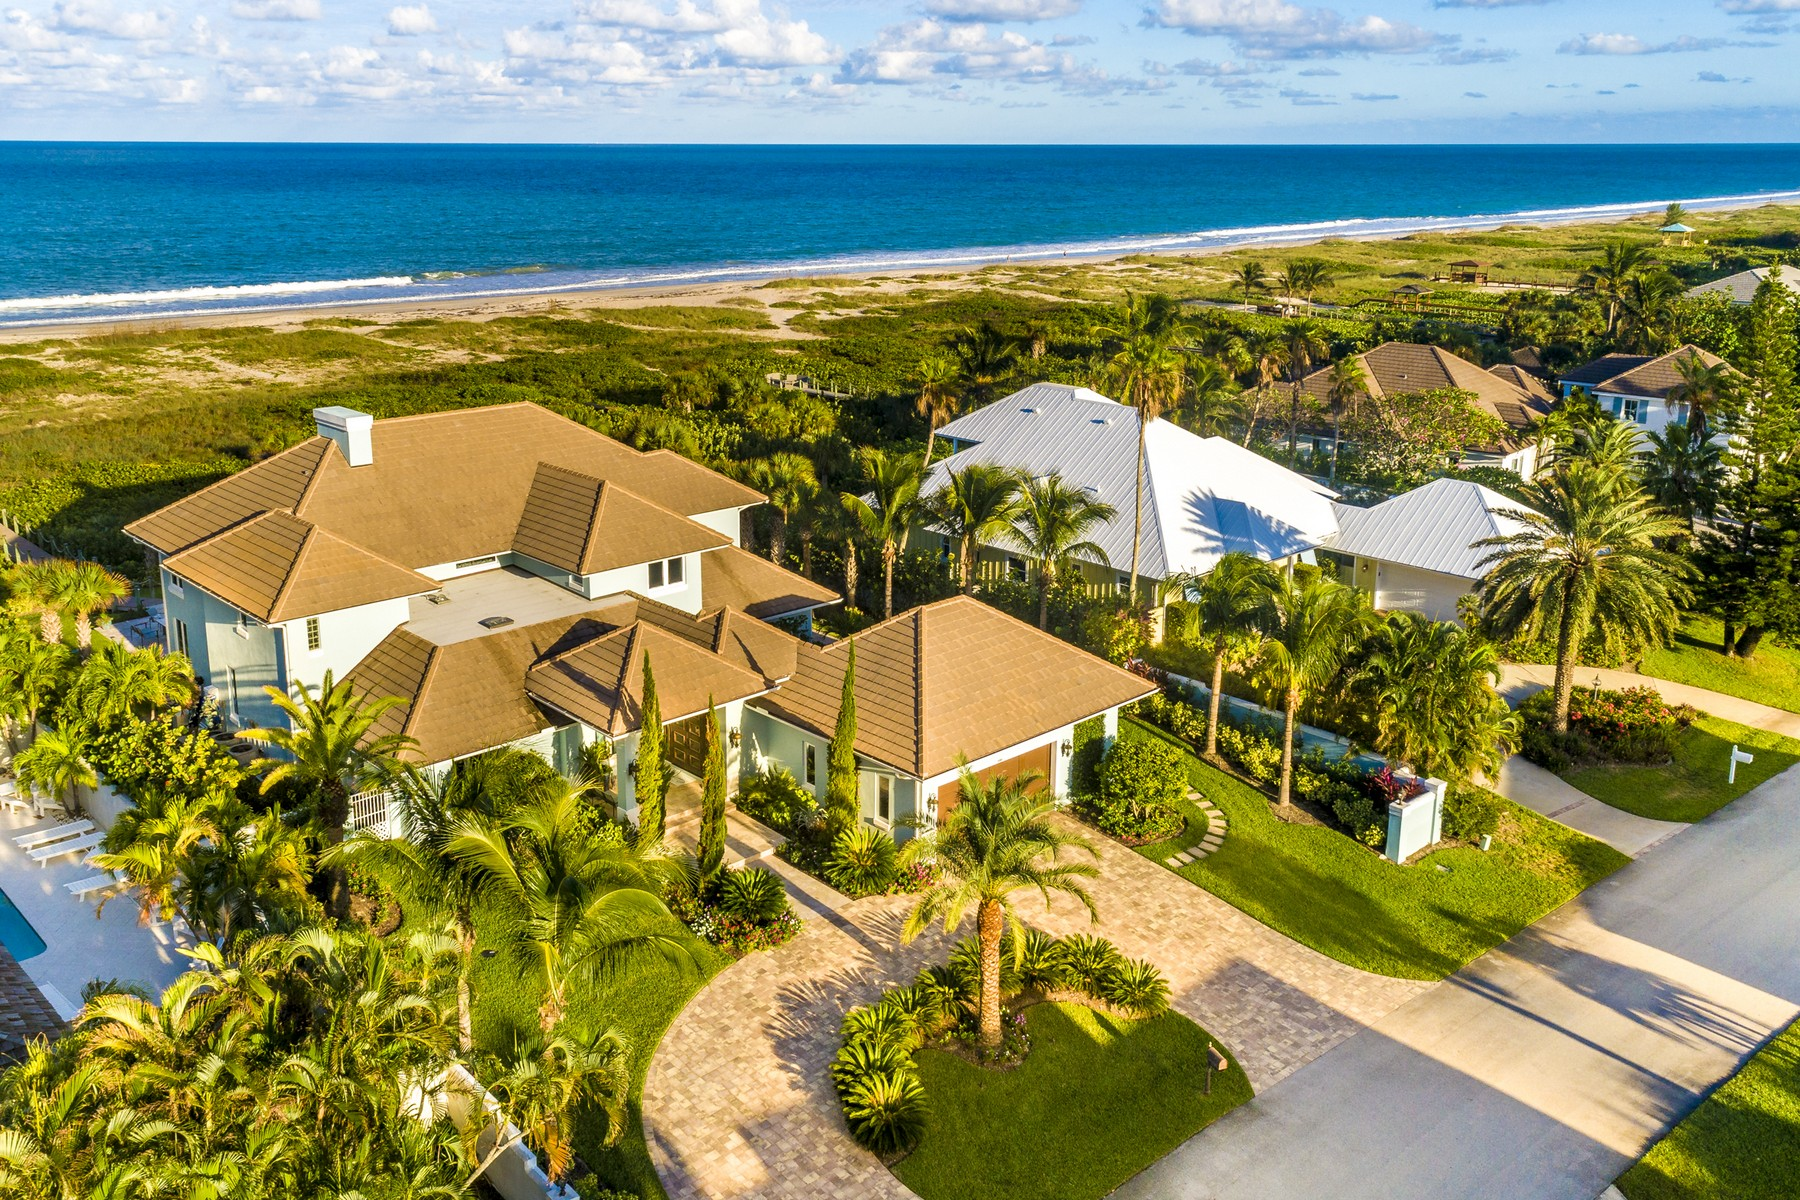 Property のために 売買 アット Stunning Oceanfront Estate 1240 Olde Doubloon Drive Vero Beach, フロリダ 32963 アメリカ